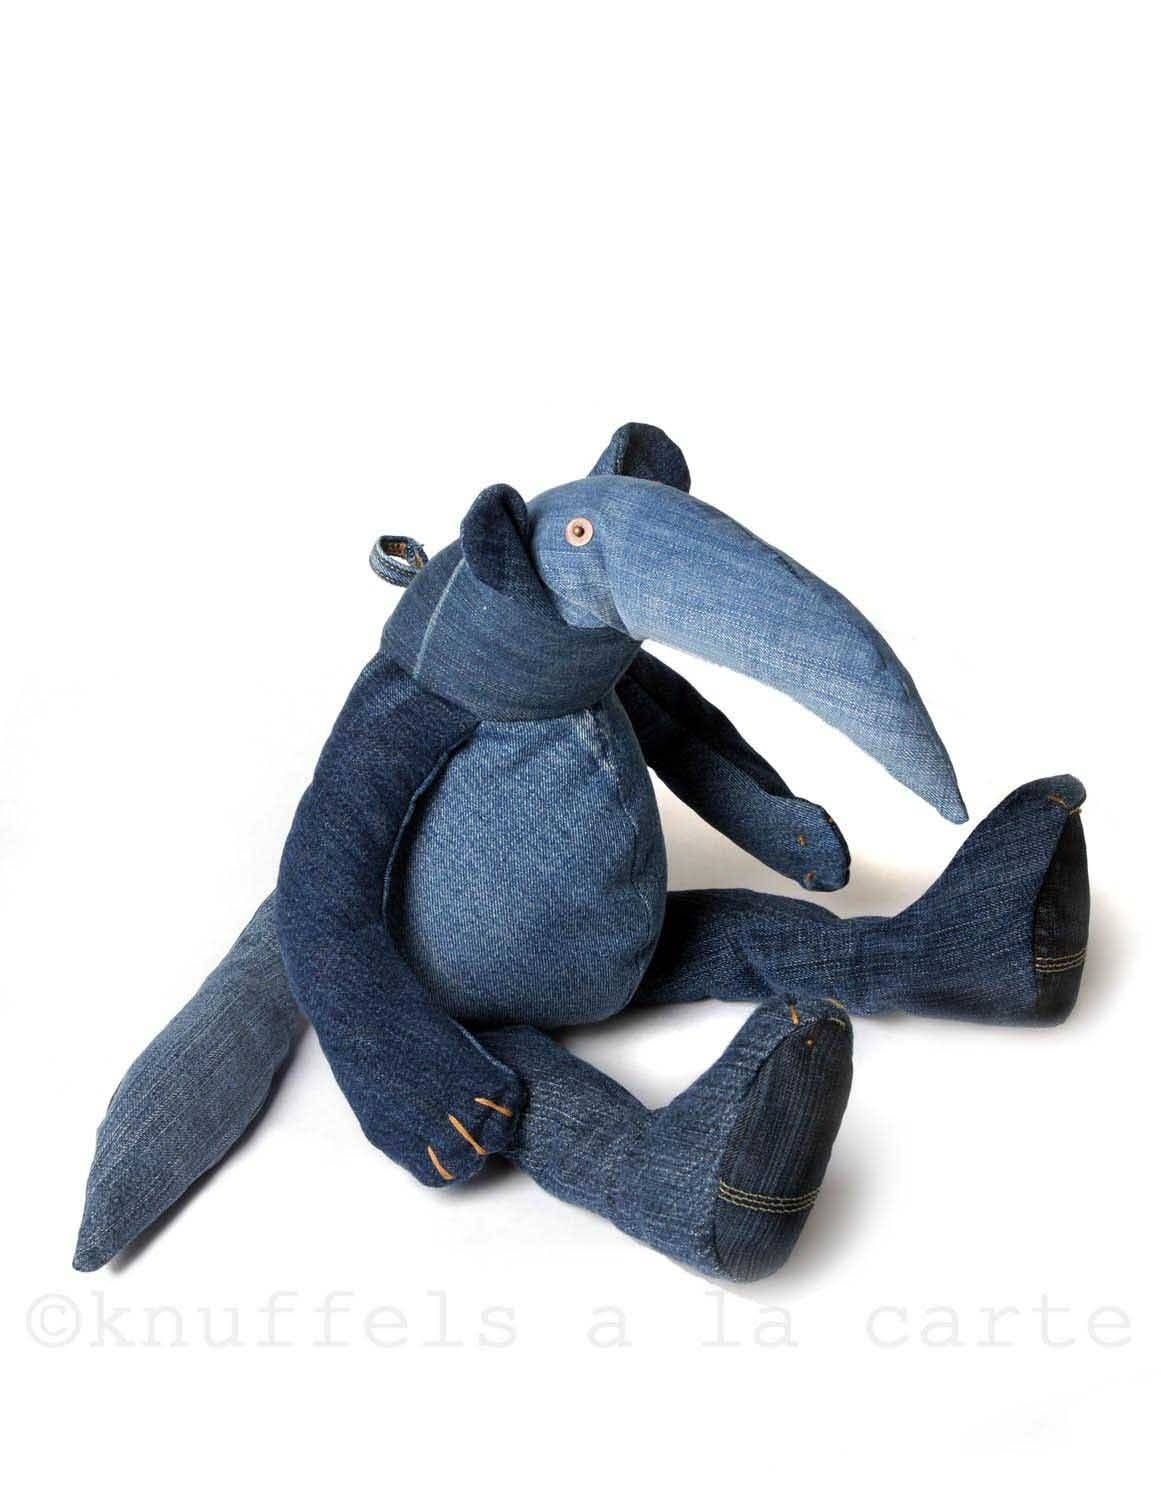 This cool ant eater softieis made from recycled jeans. He's created by Dutch design label Maison Indigo.